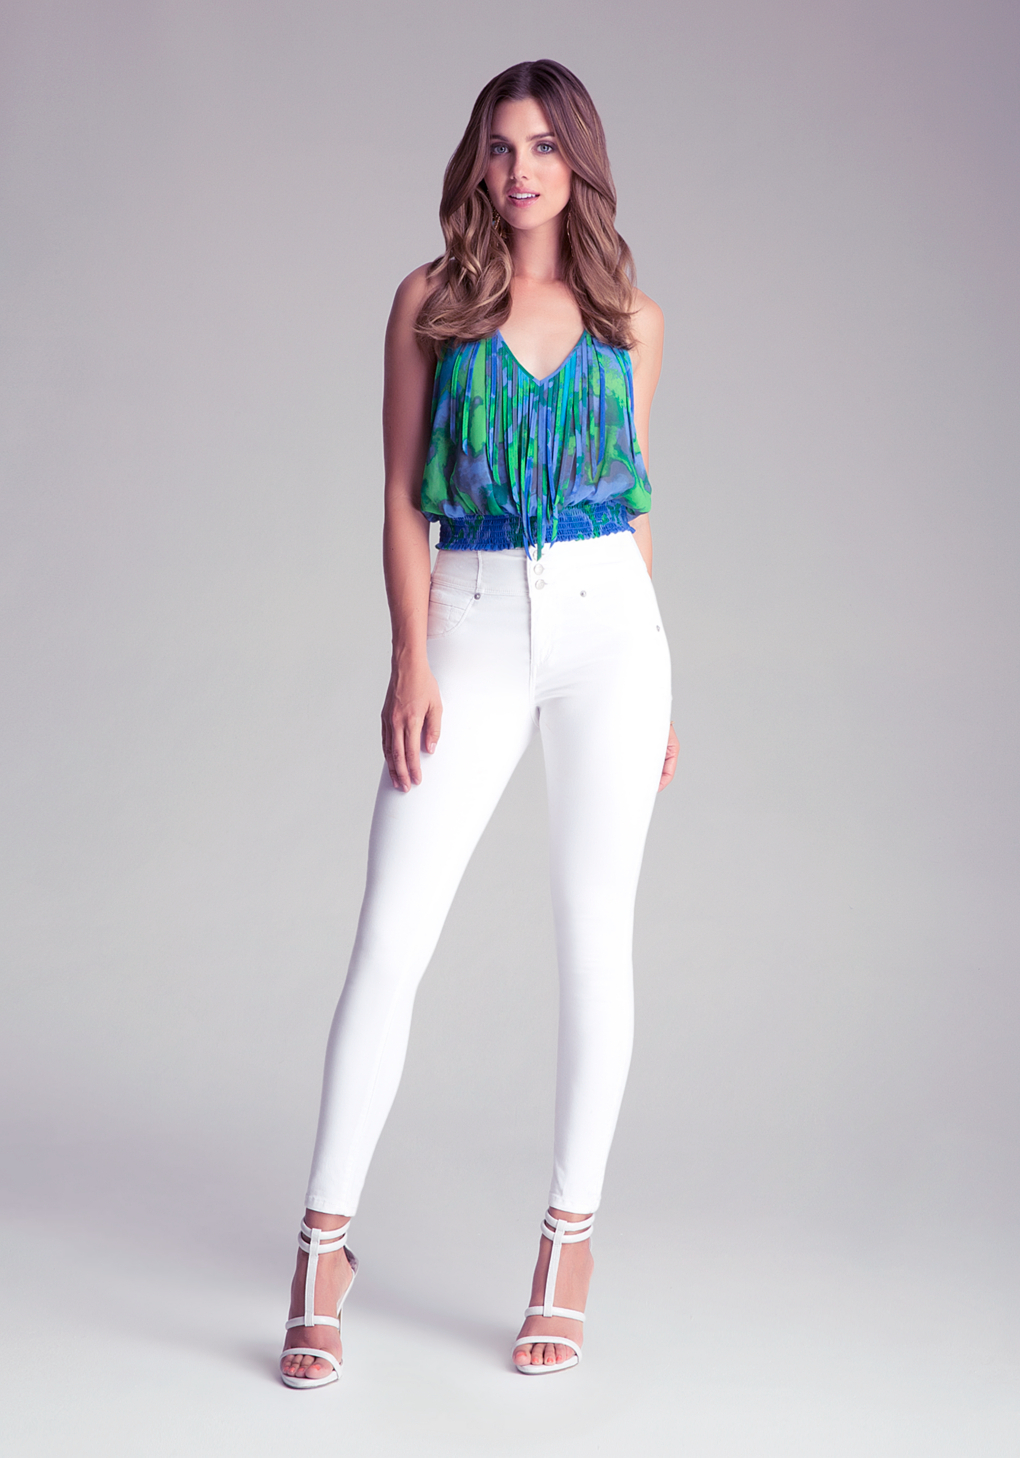 Slightly Distressed White Skinny Jeans - Ripped Knee White